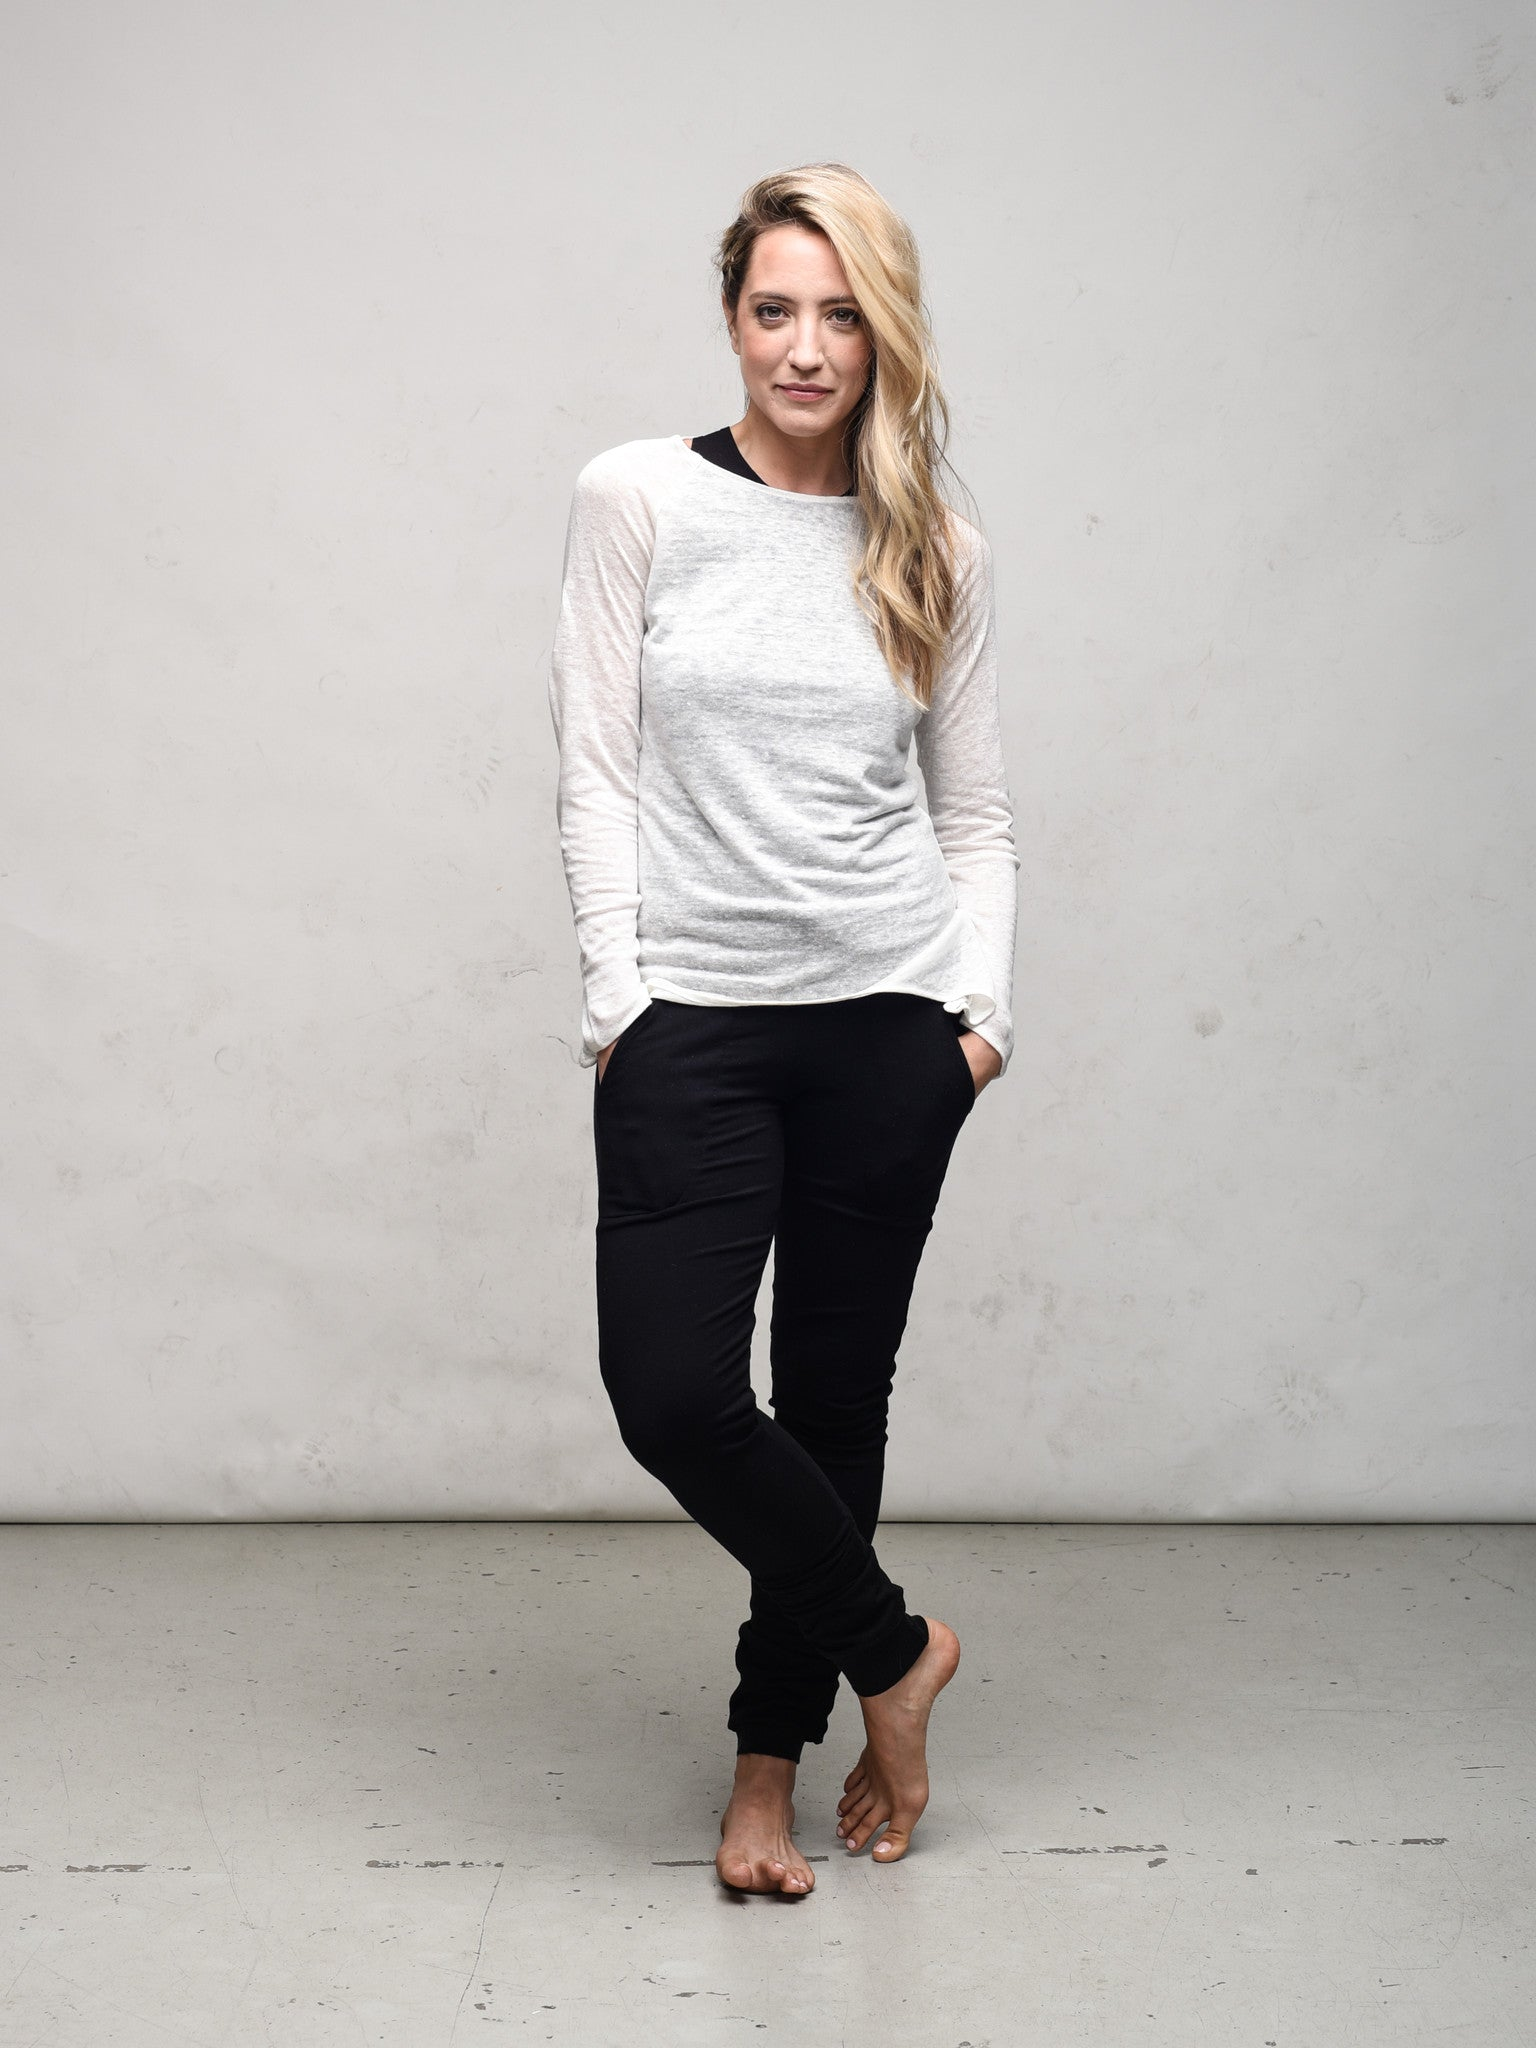 Linen Knit long sleeve top Elvin by Zen Nomad